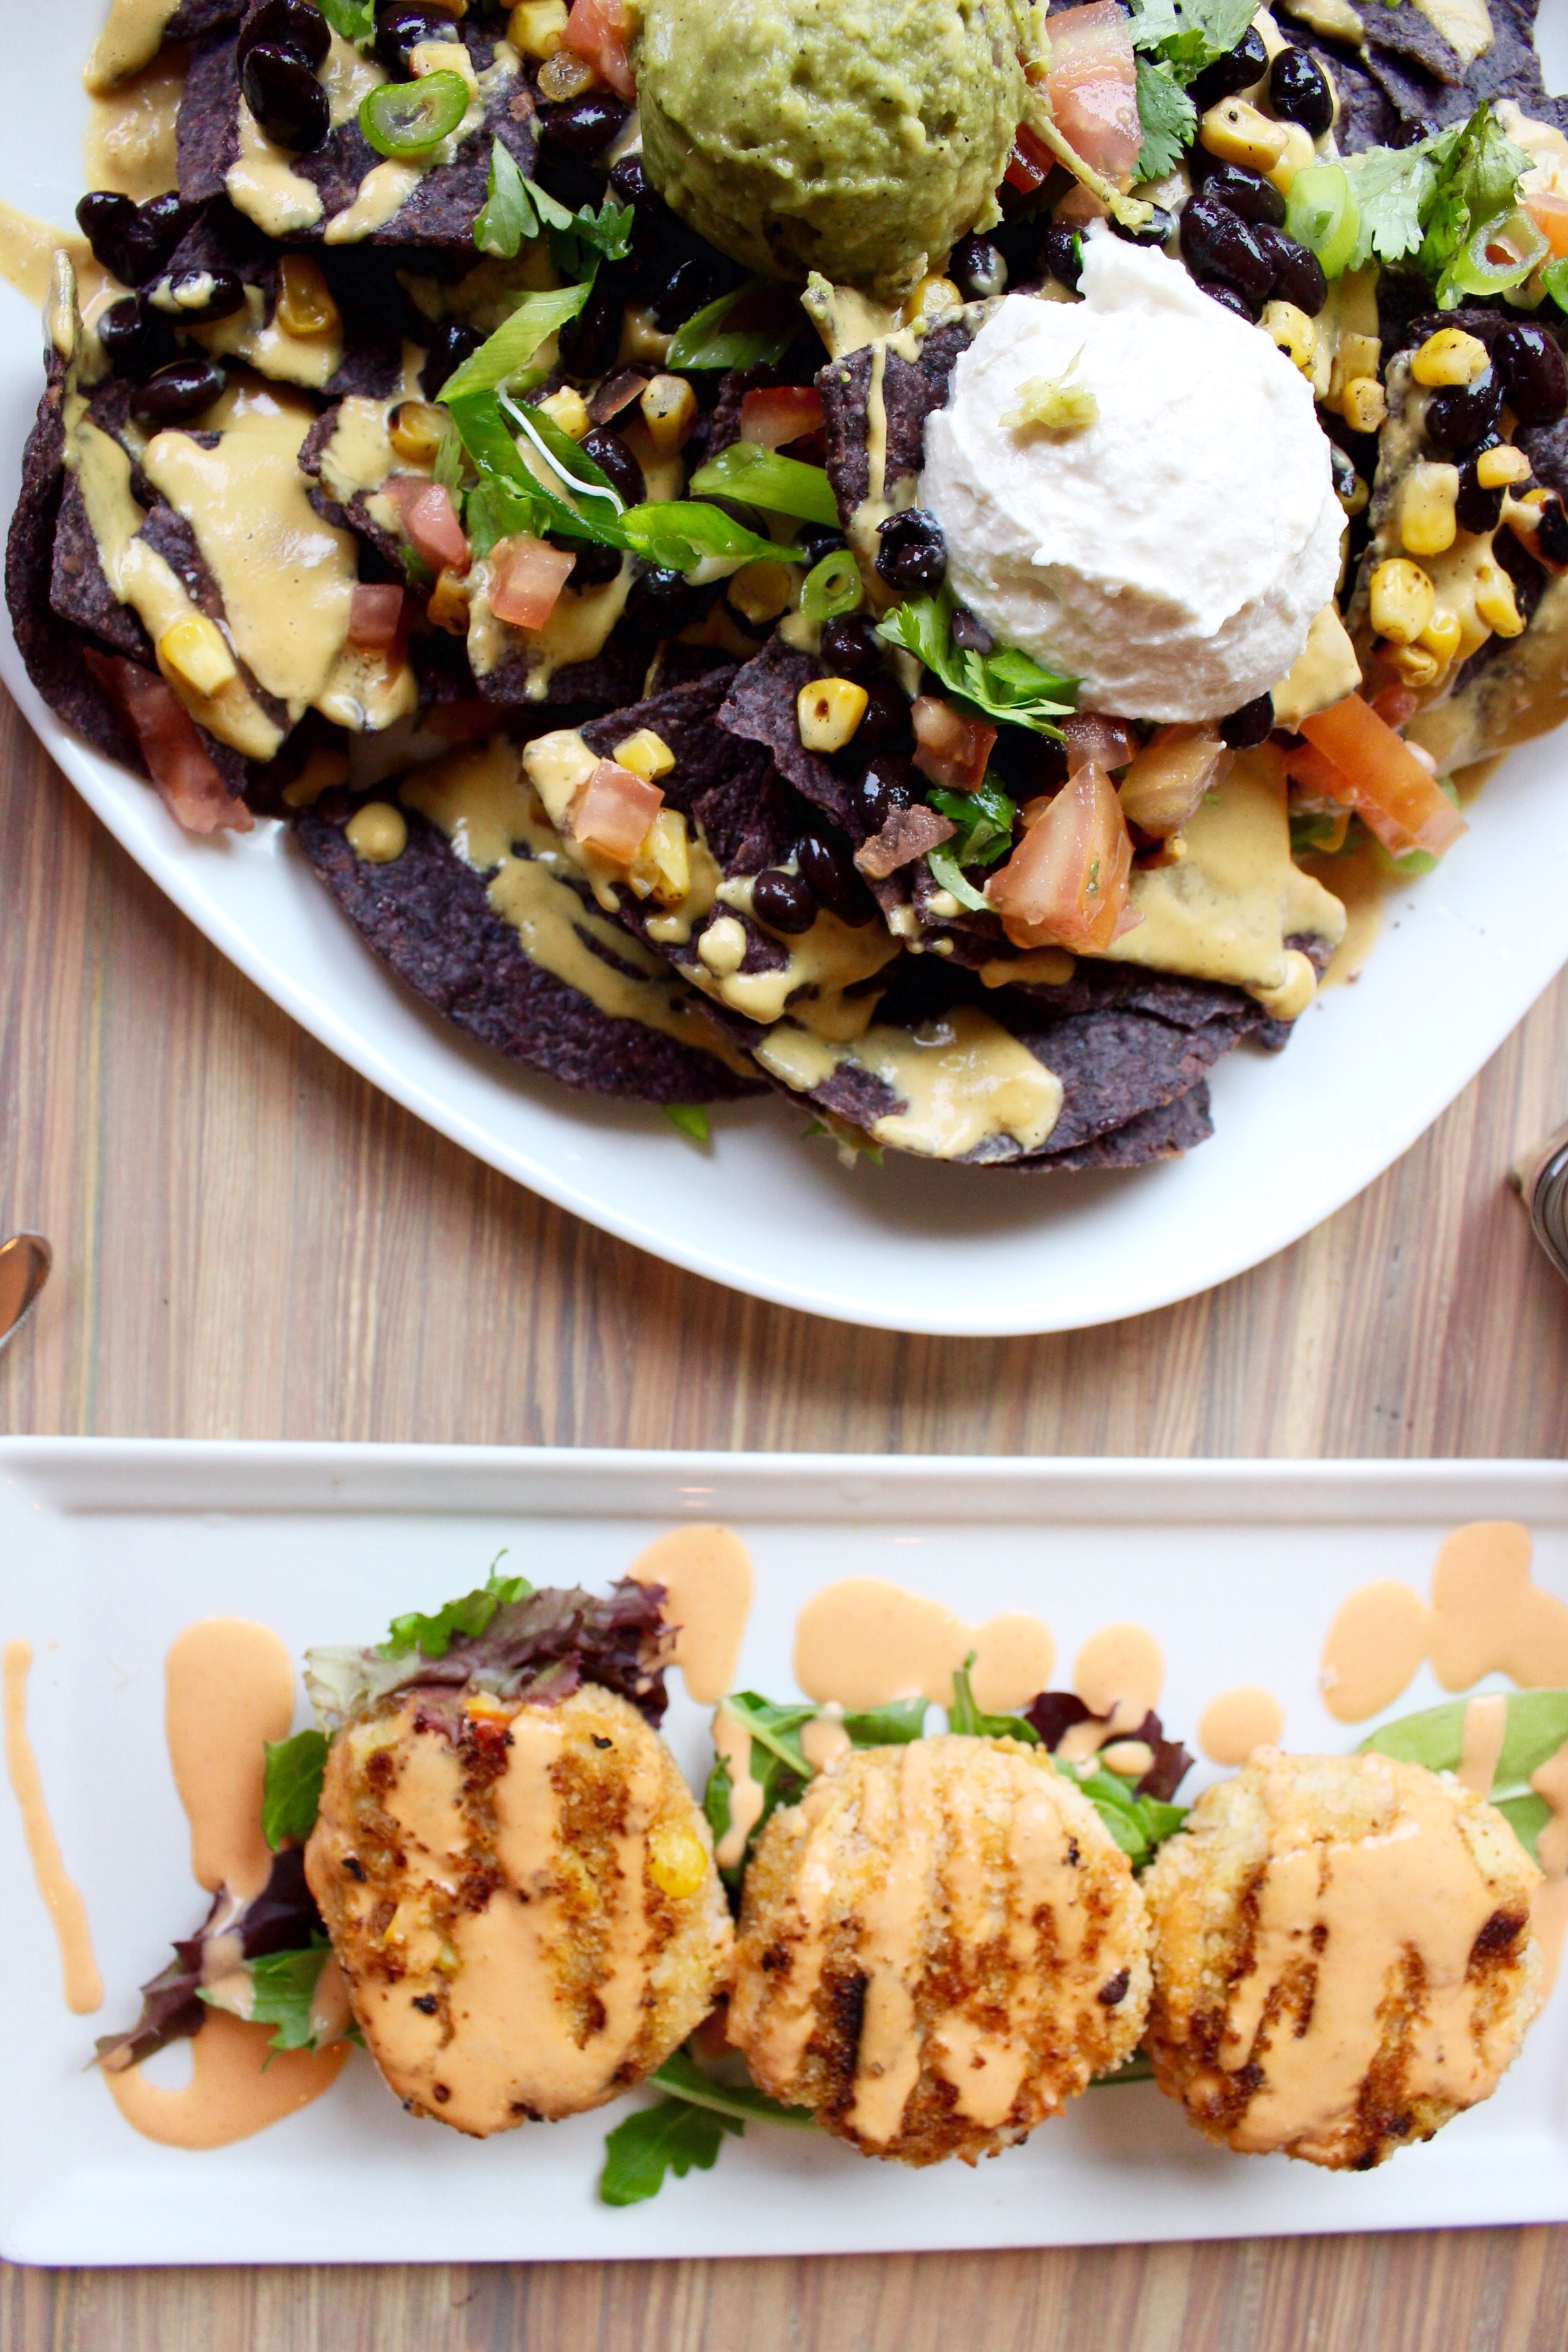 Seed nachos and artichoke cakes